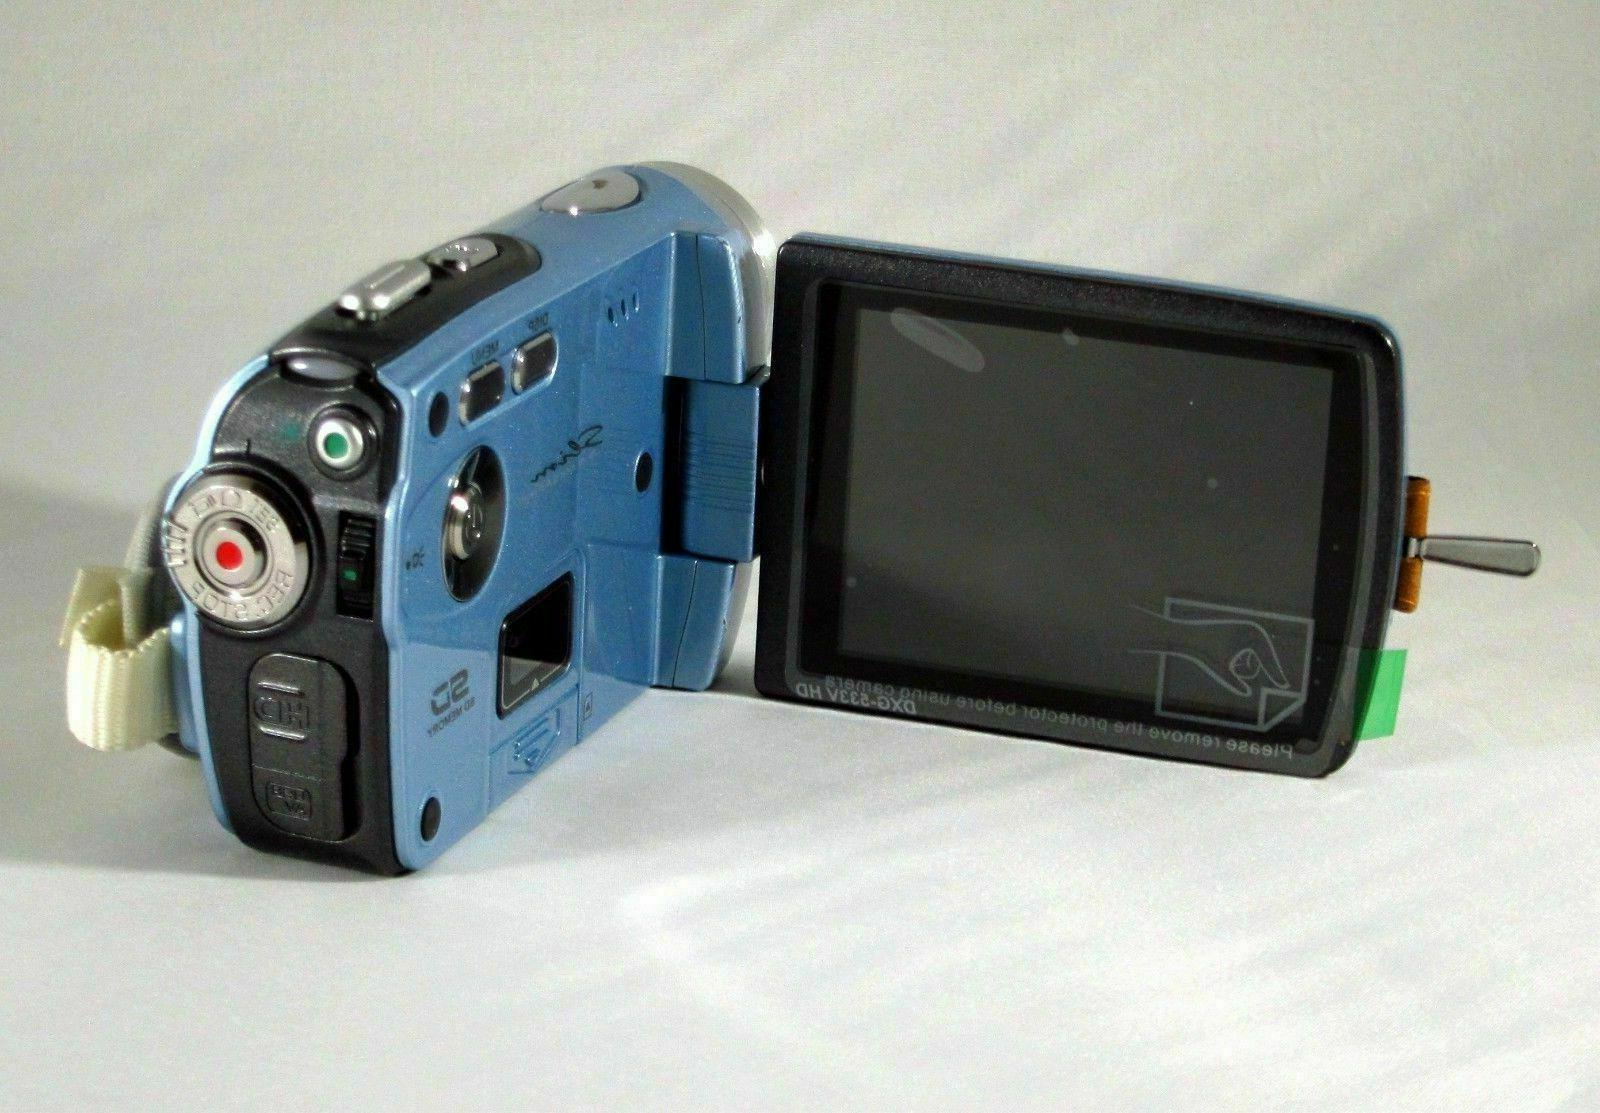 NEW ghost hunting camcorder Infrared vision paranormal